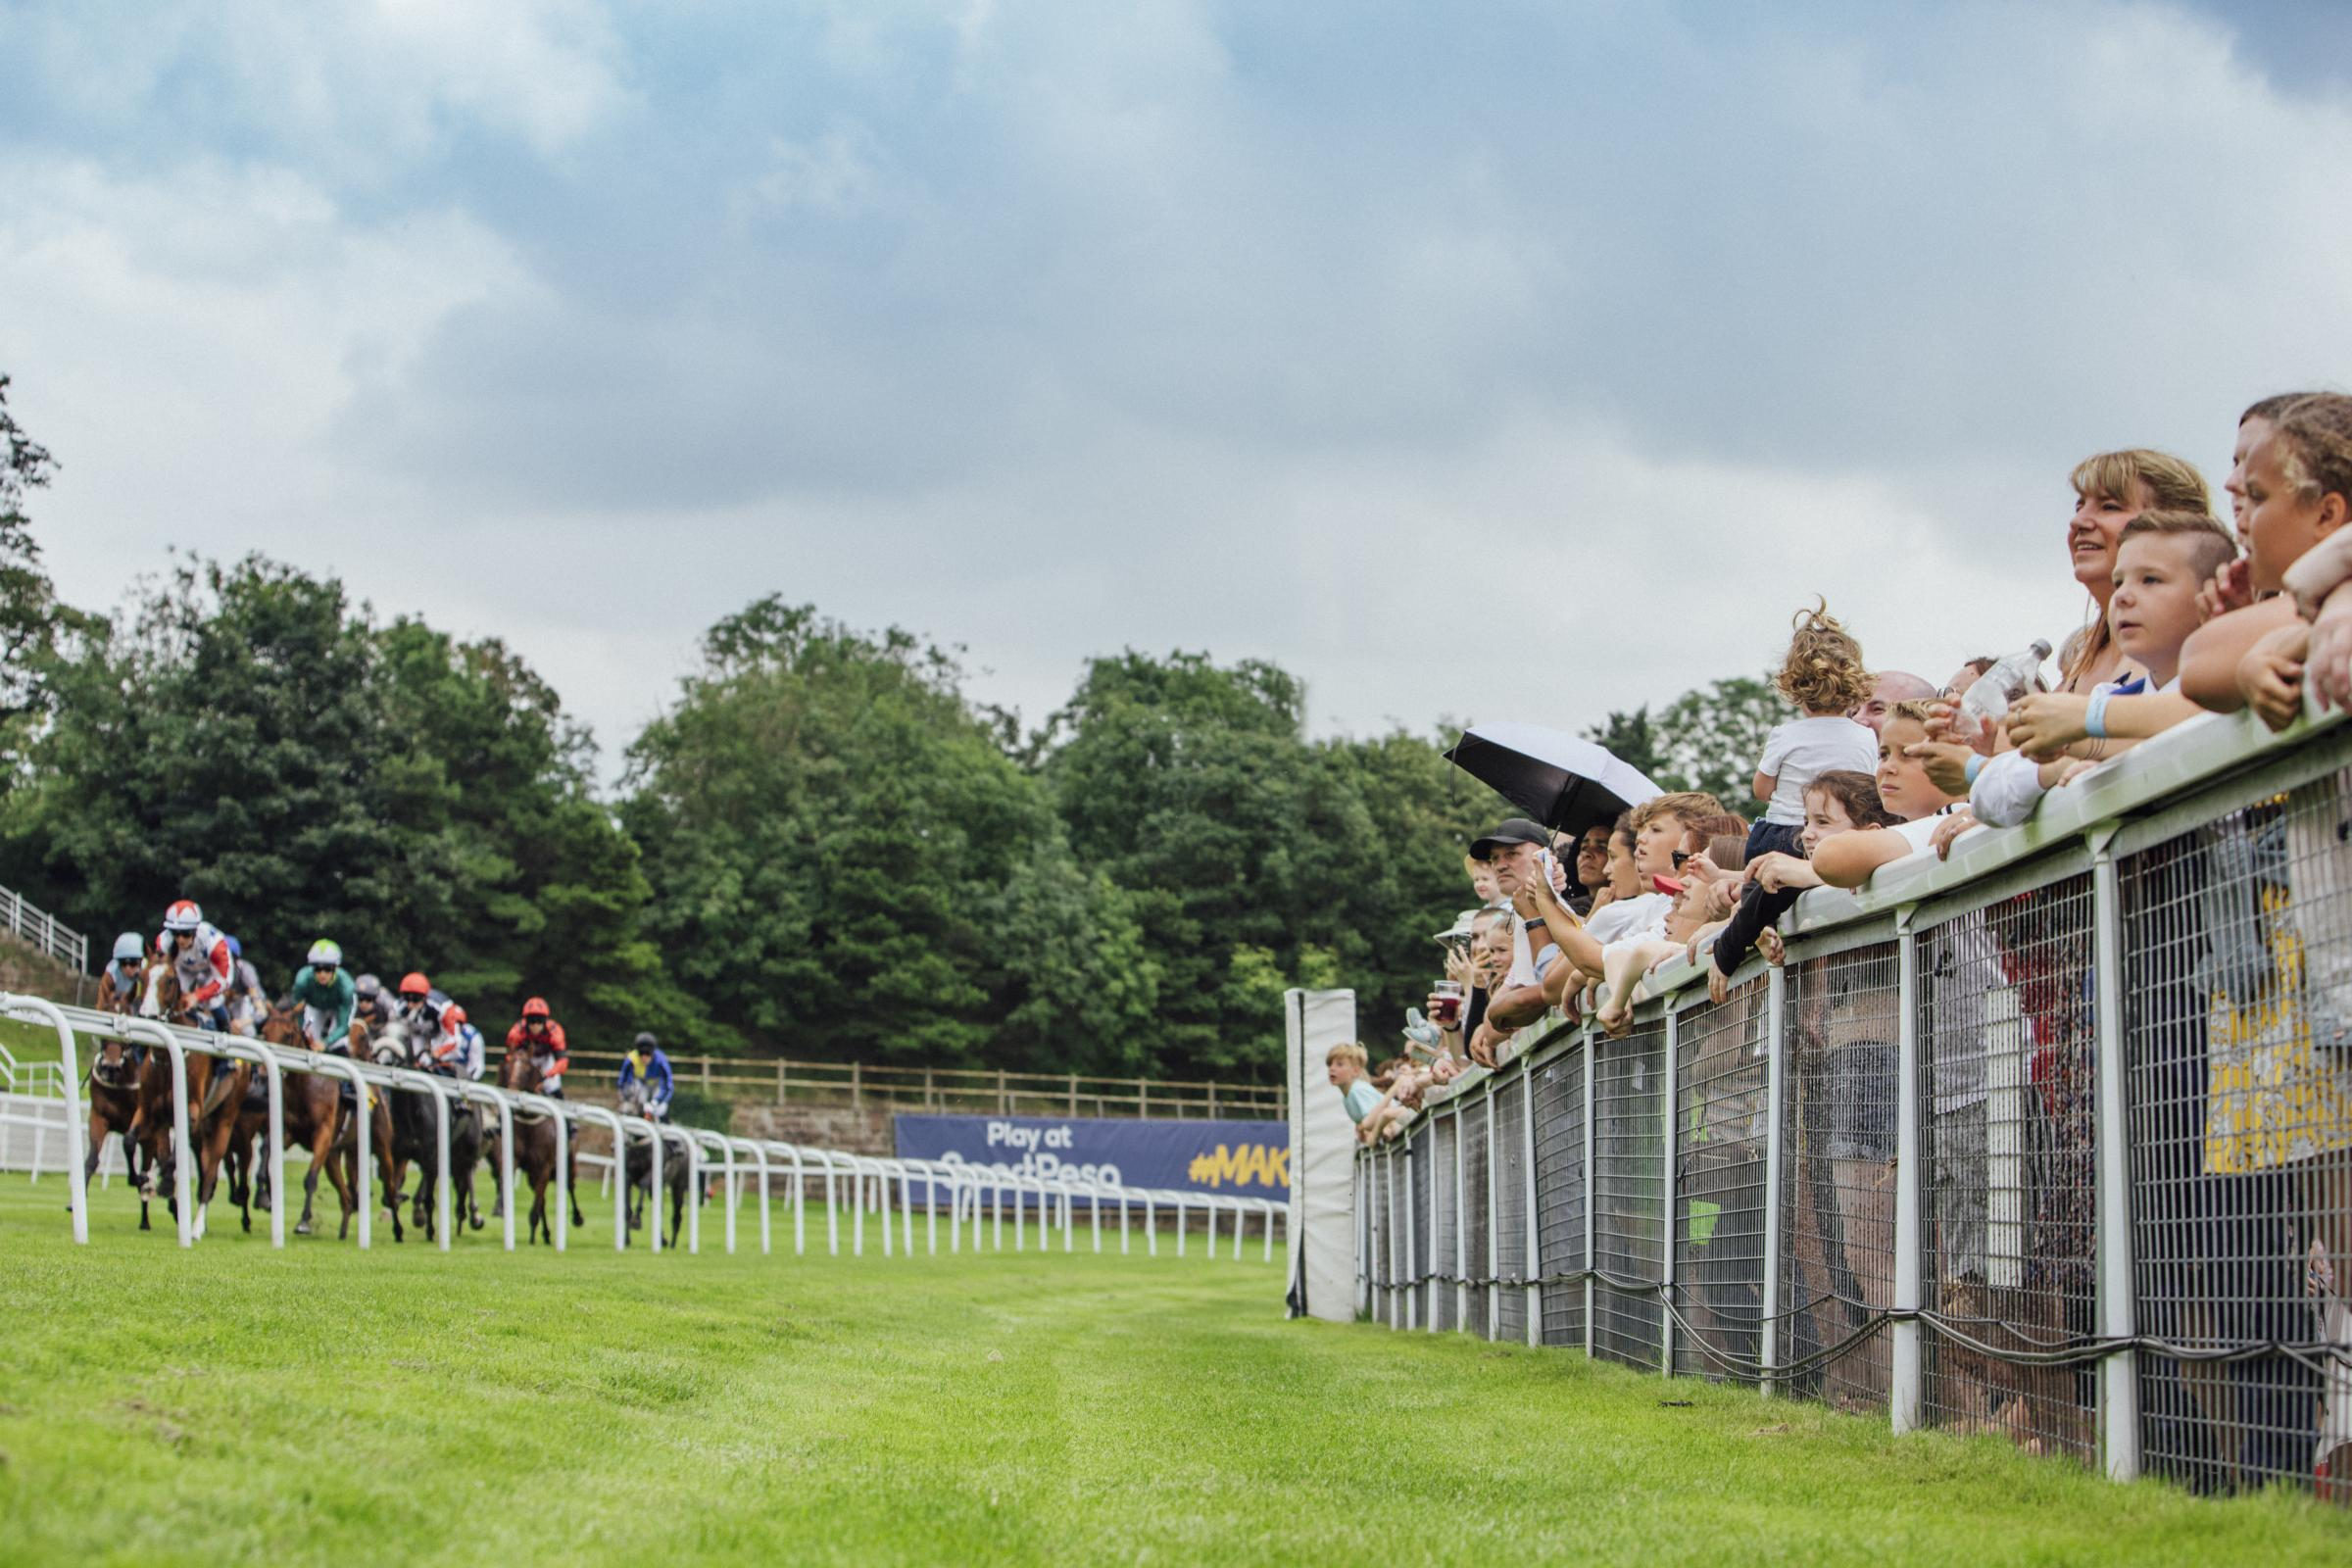 Chester Racecourse will be hosting its Family Funday.